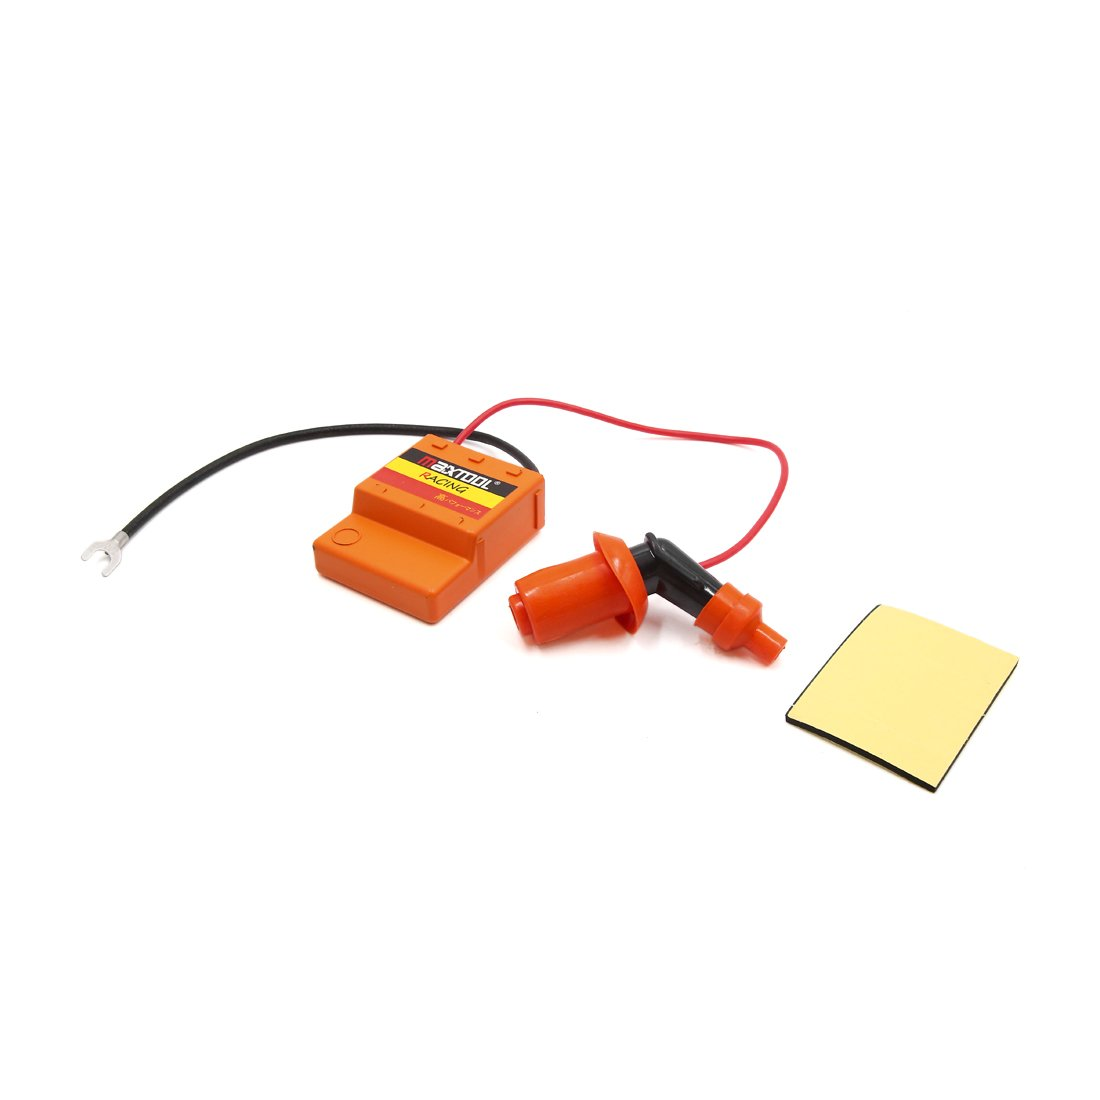 uxcell Motorcycle Scooter Ignition Booster Accelerate Controller w Spark Cap